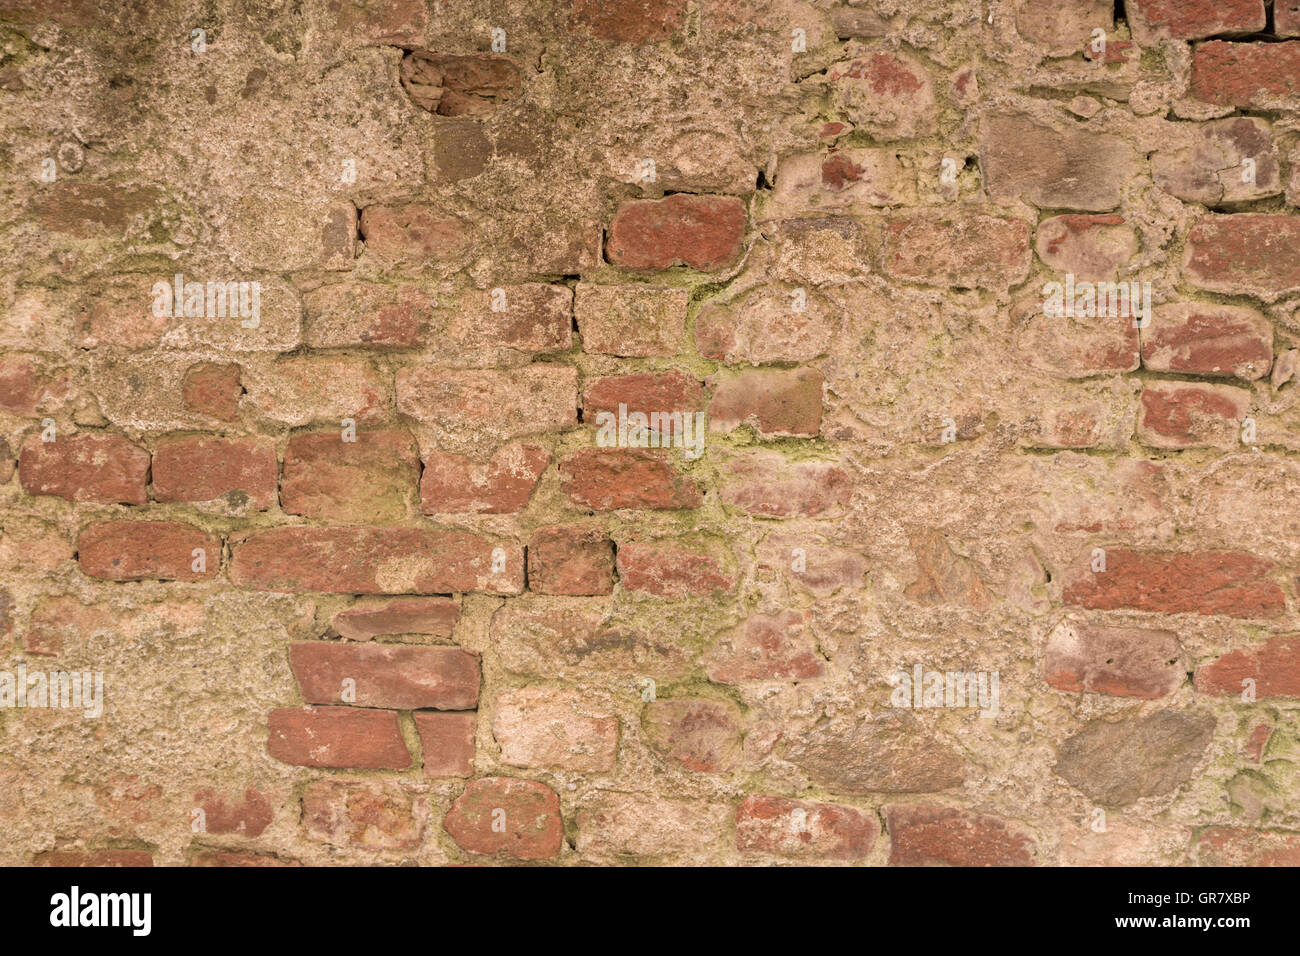 Brickwork Suitable As Background Image - Stock Image